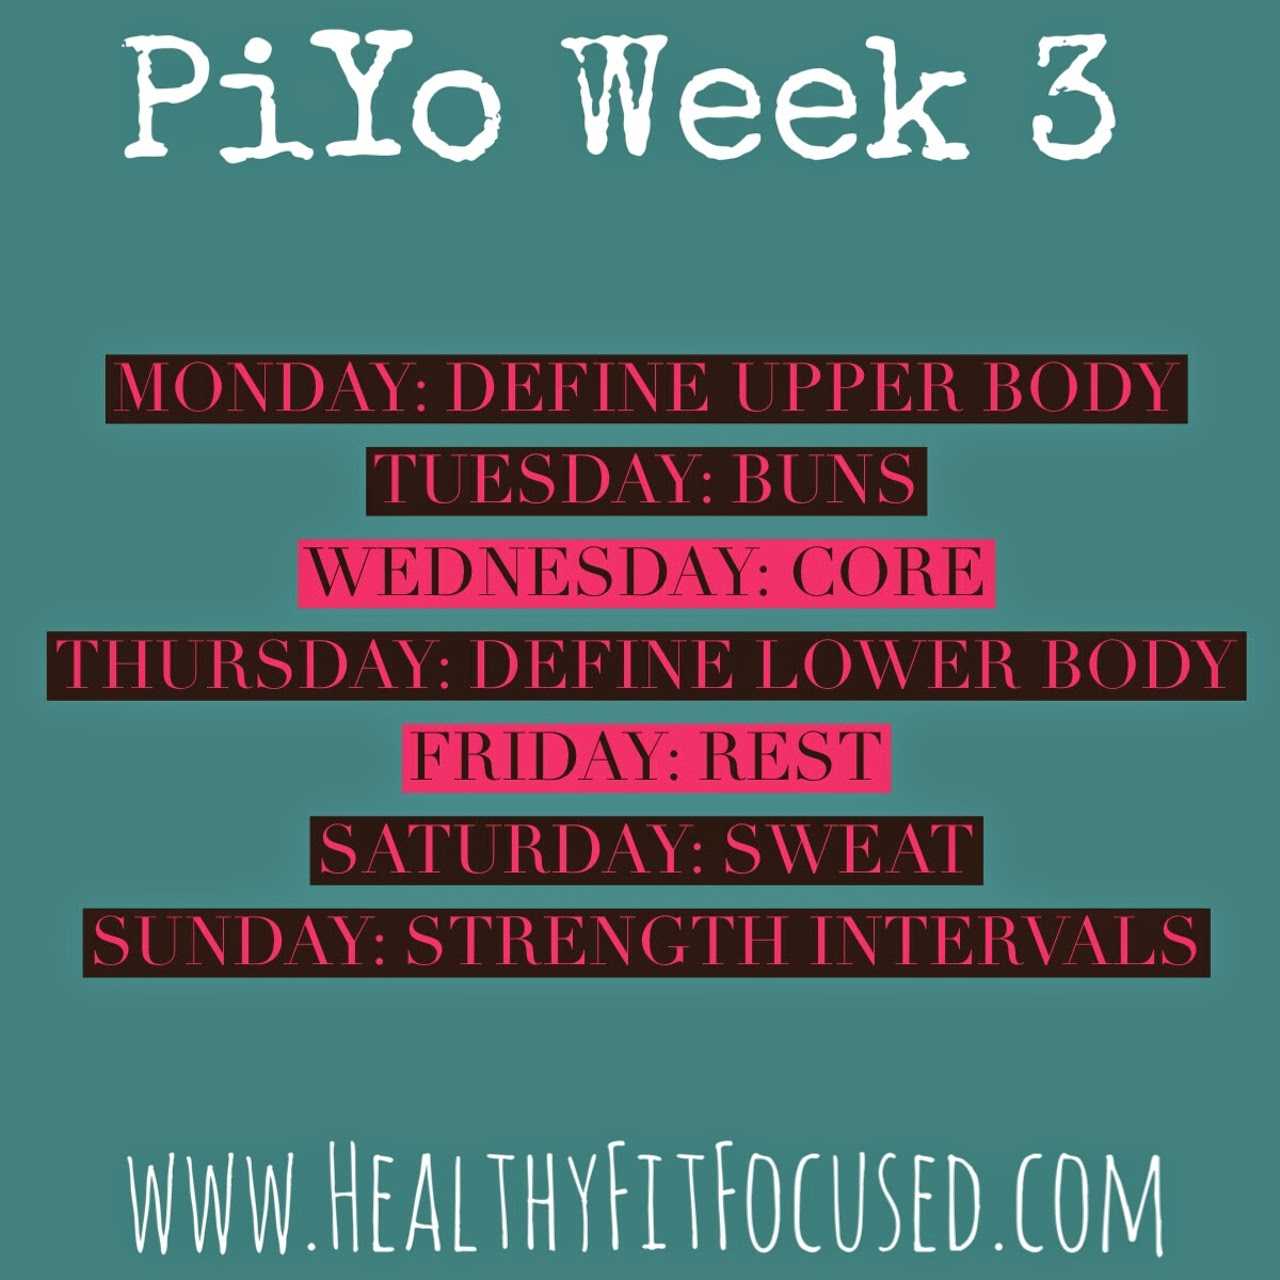 Week 3 Piyo schedule, piyo update and piyo meal plan